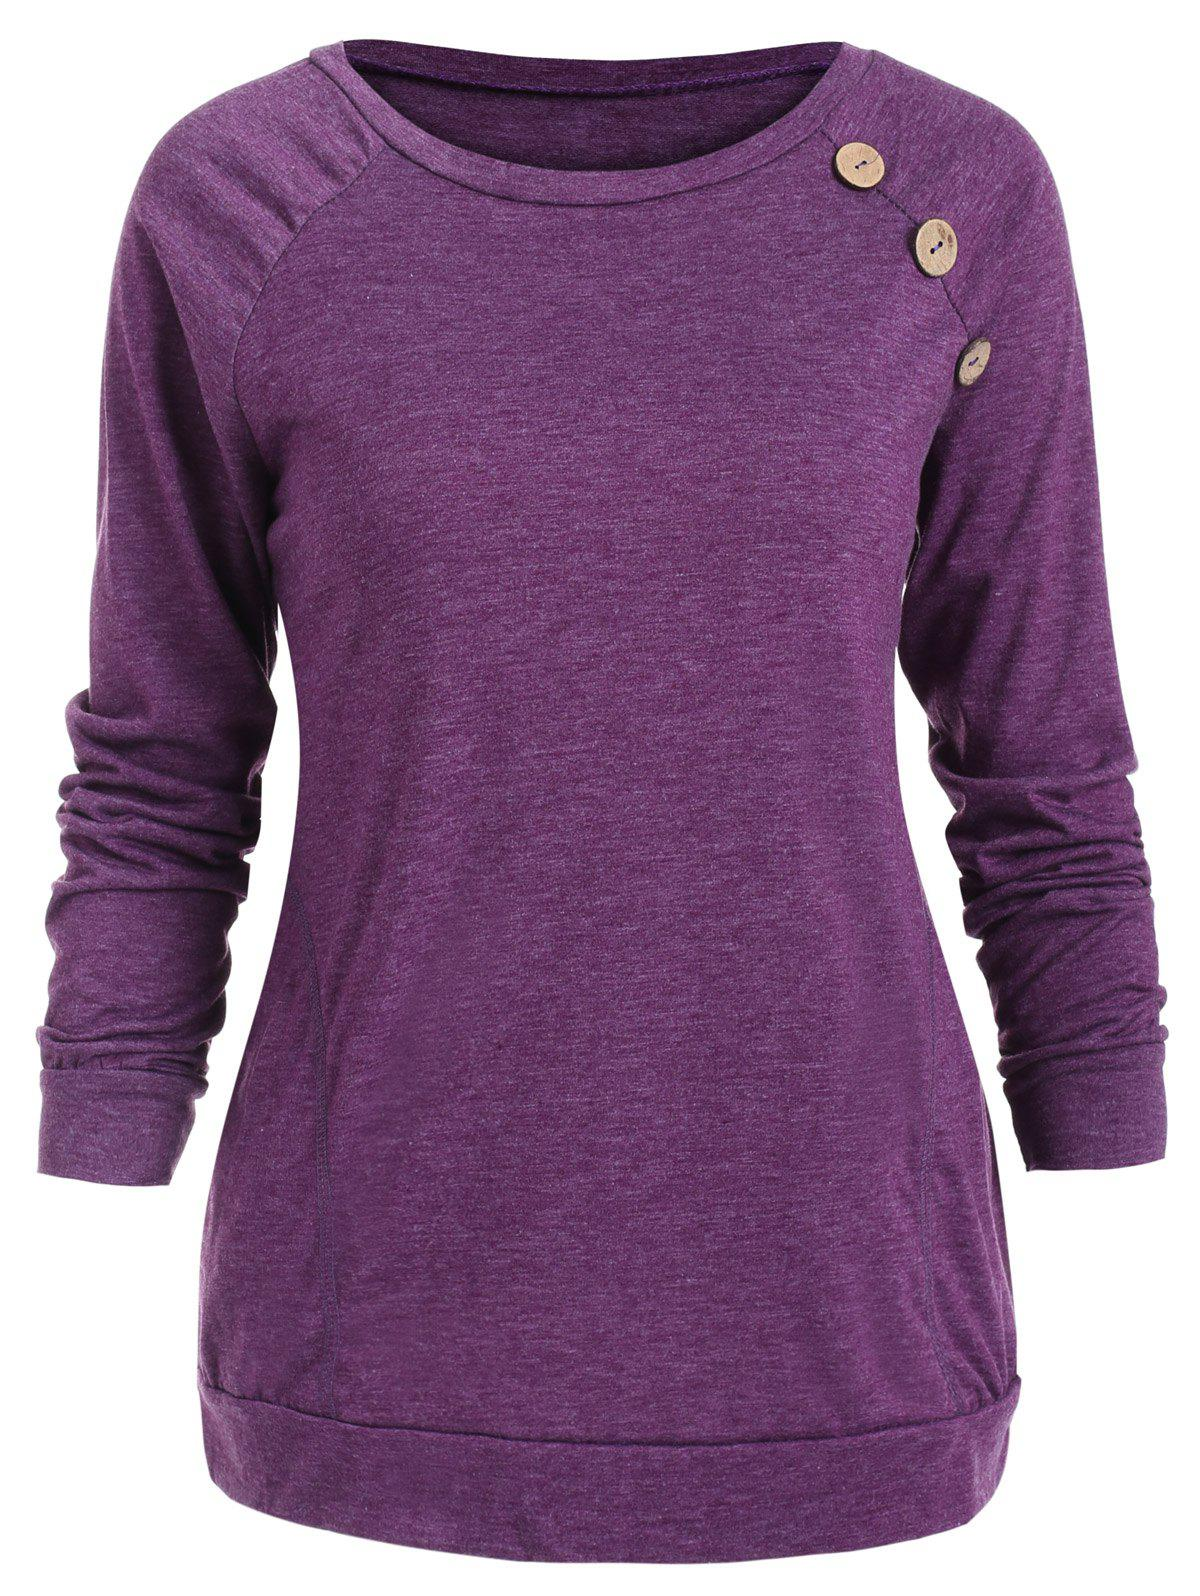 Fancy Buttons Embellished Long Sleeve T-shirt